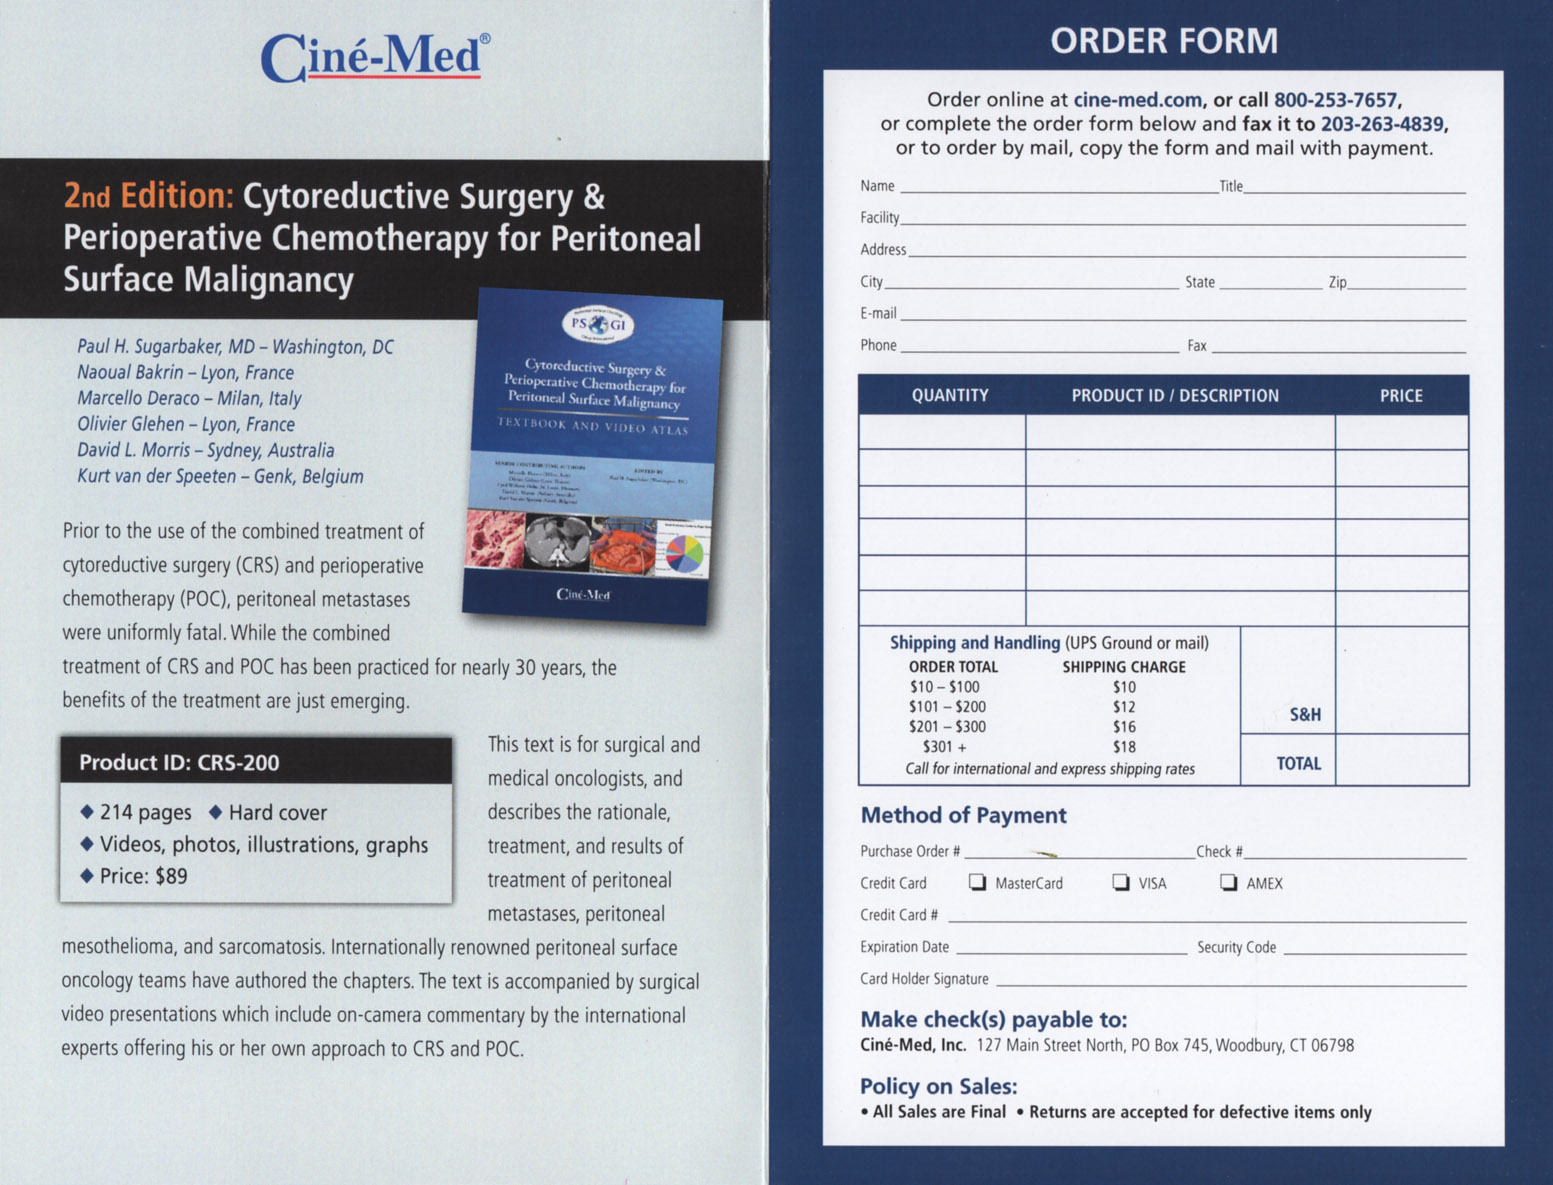 Cytoreductive Surgery and Perioperative Chemotherapy for Peritoneal Surface Malignancy - order form